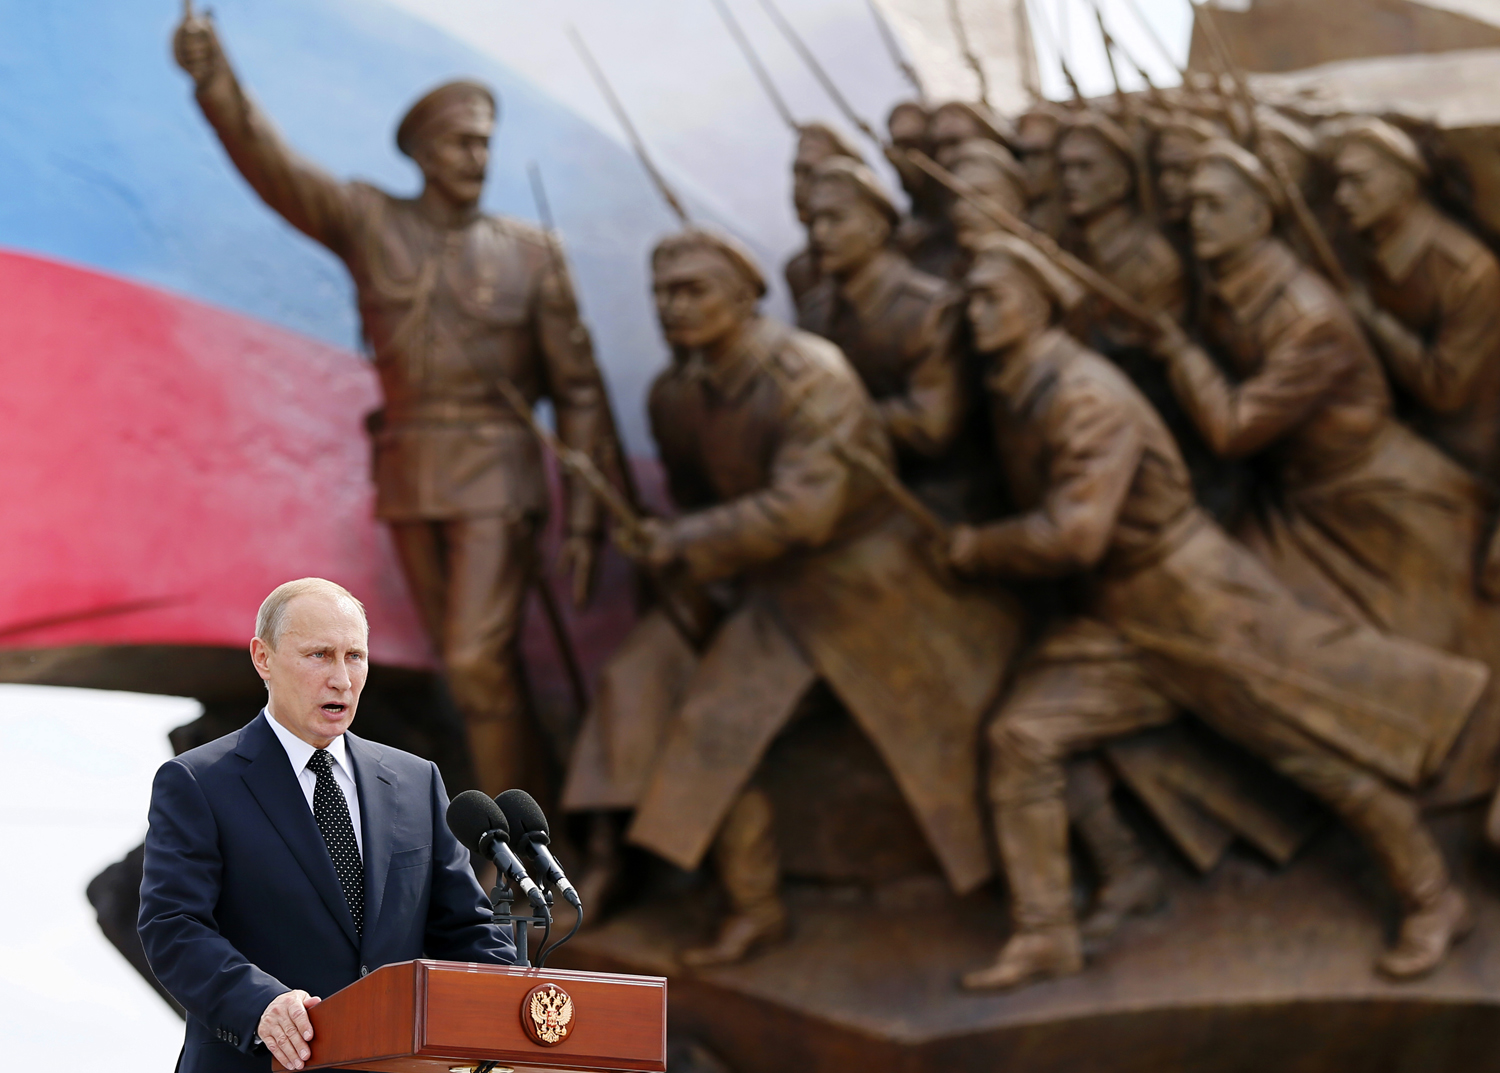 President Vladimir Putin speaks at the opening ceremony of the monument to the Heroes of the World War I in Moscow on Friday, Aug. 1, 2014.